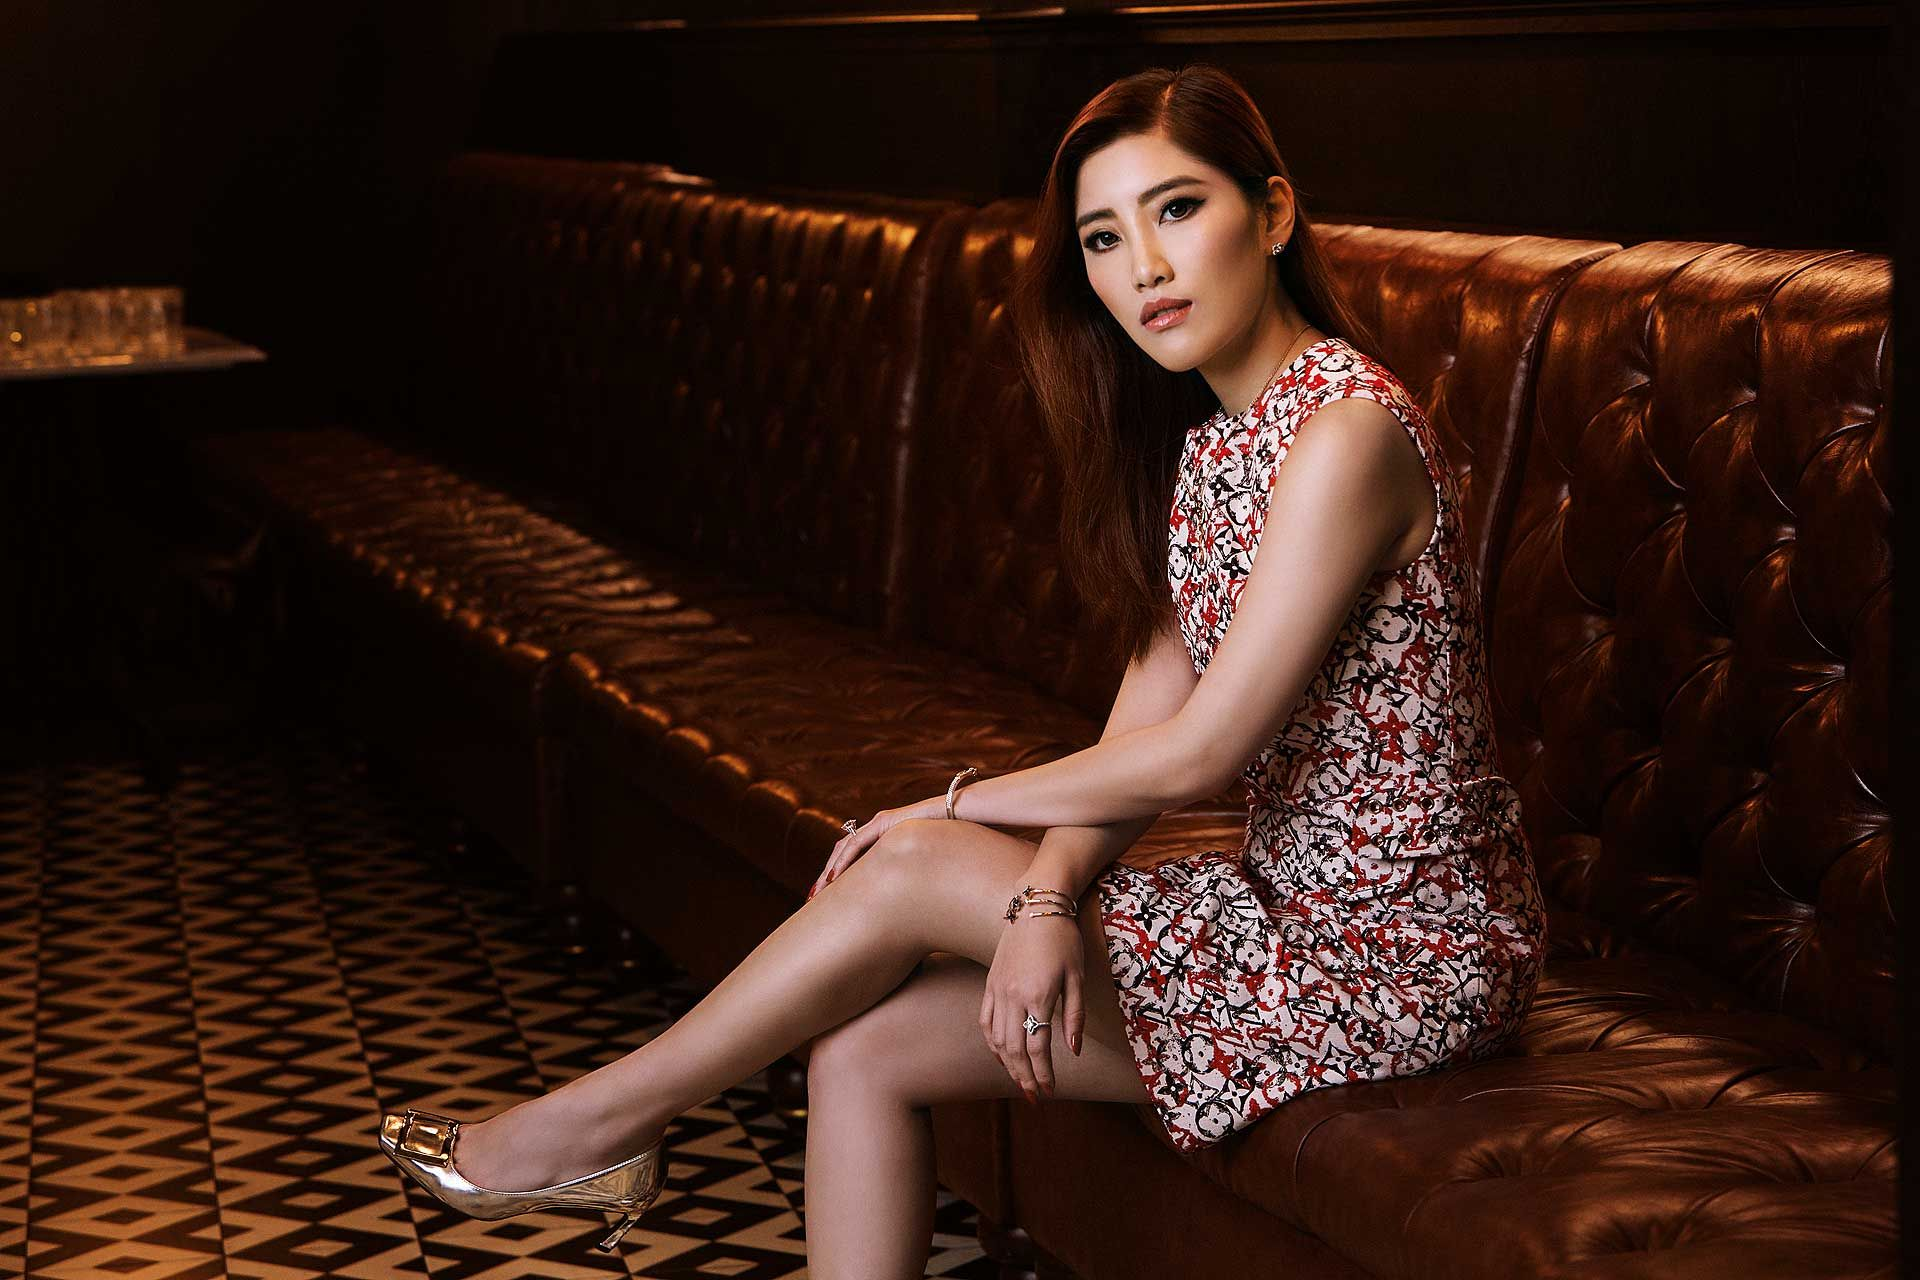 Exclusive: Chryseis Tan Gives Us Insight Into Building An Unstoppable Mindset As An Entrepreneur